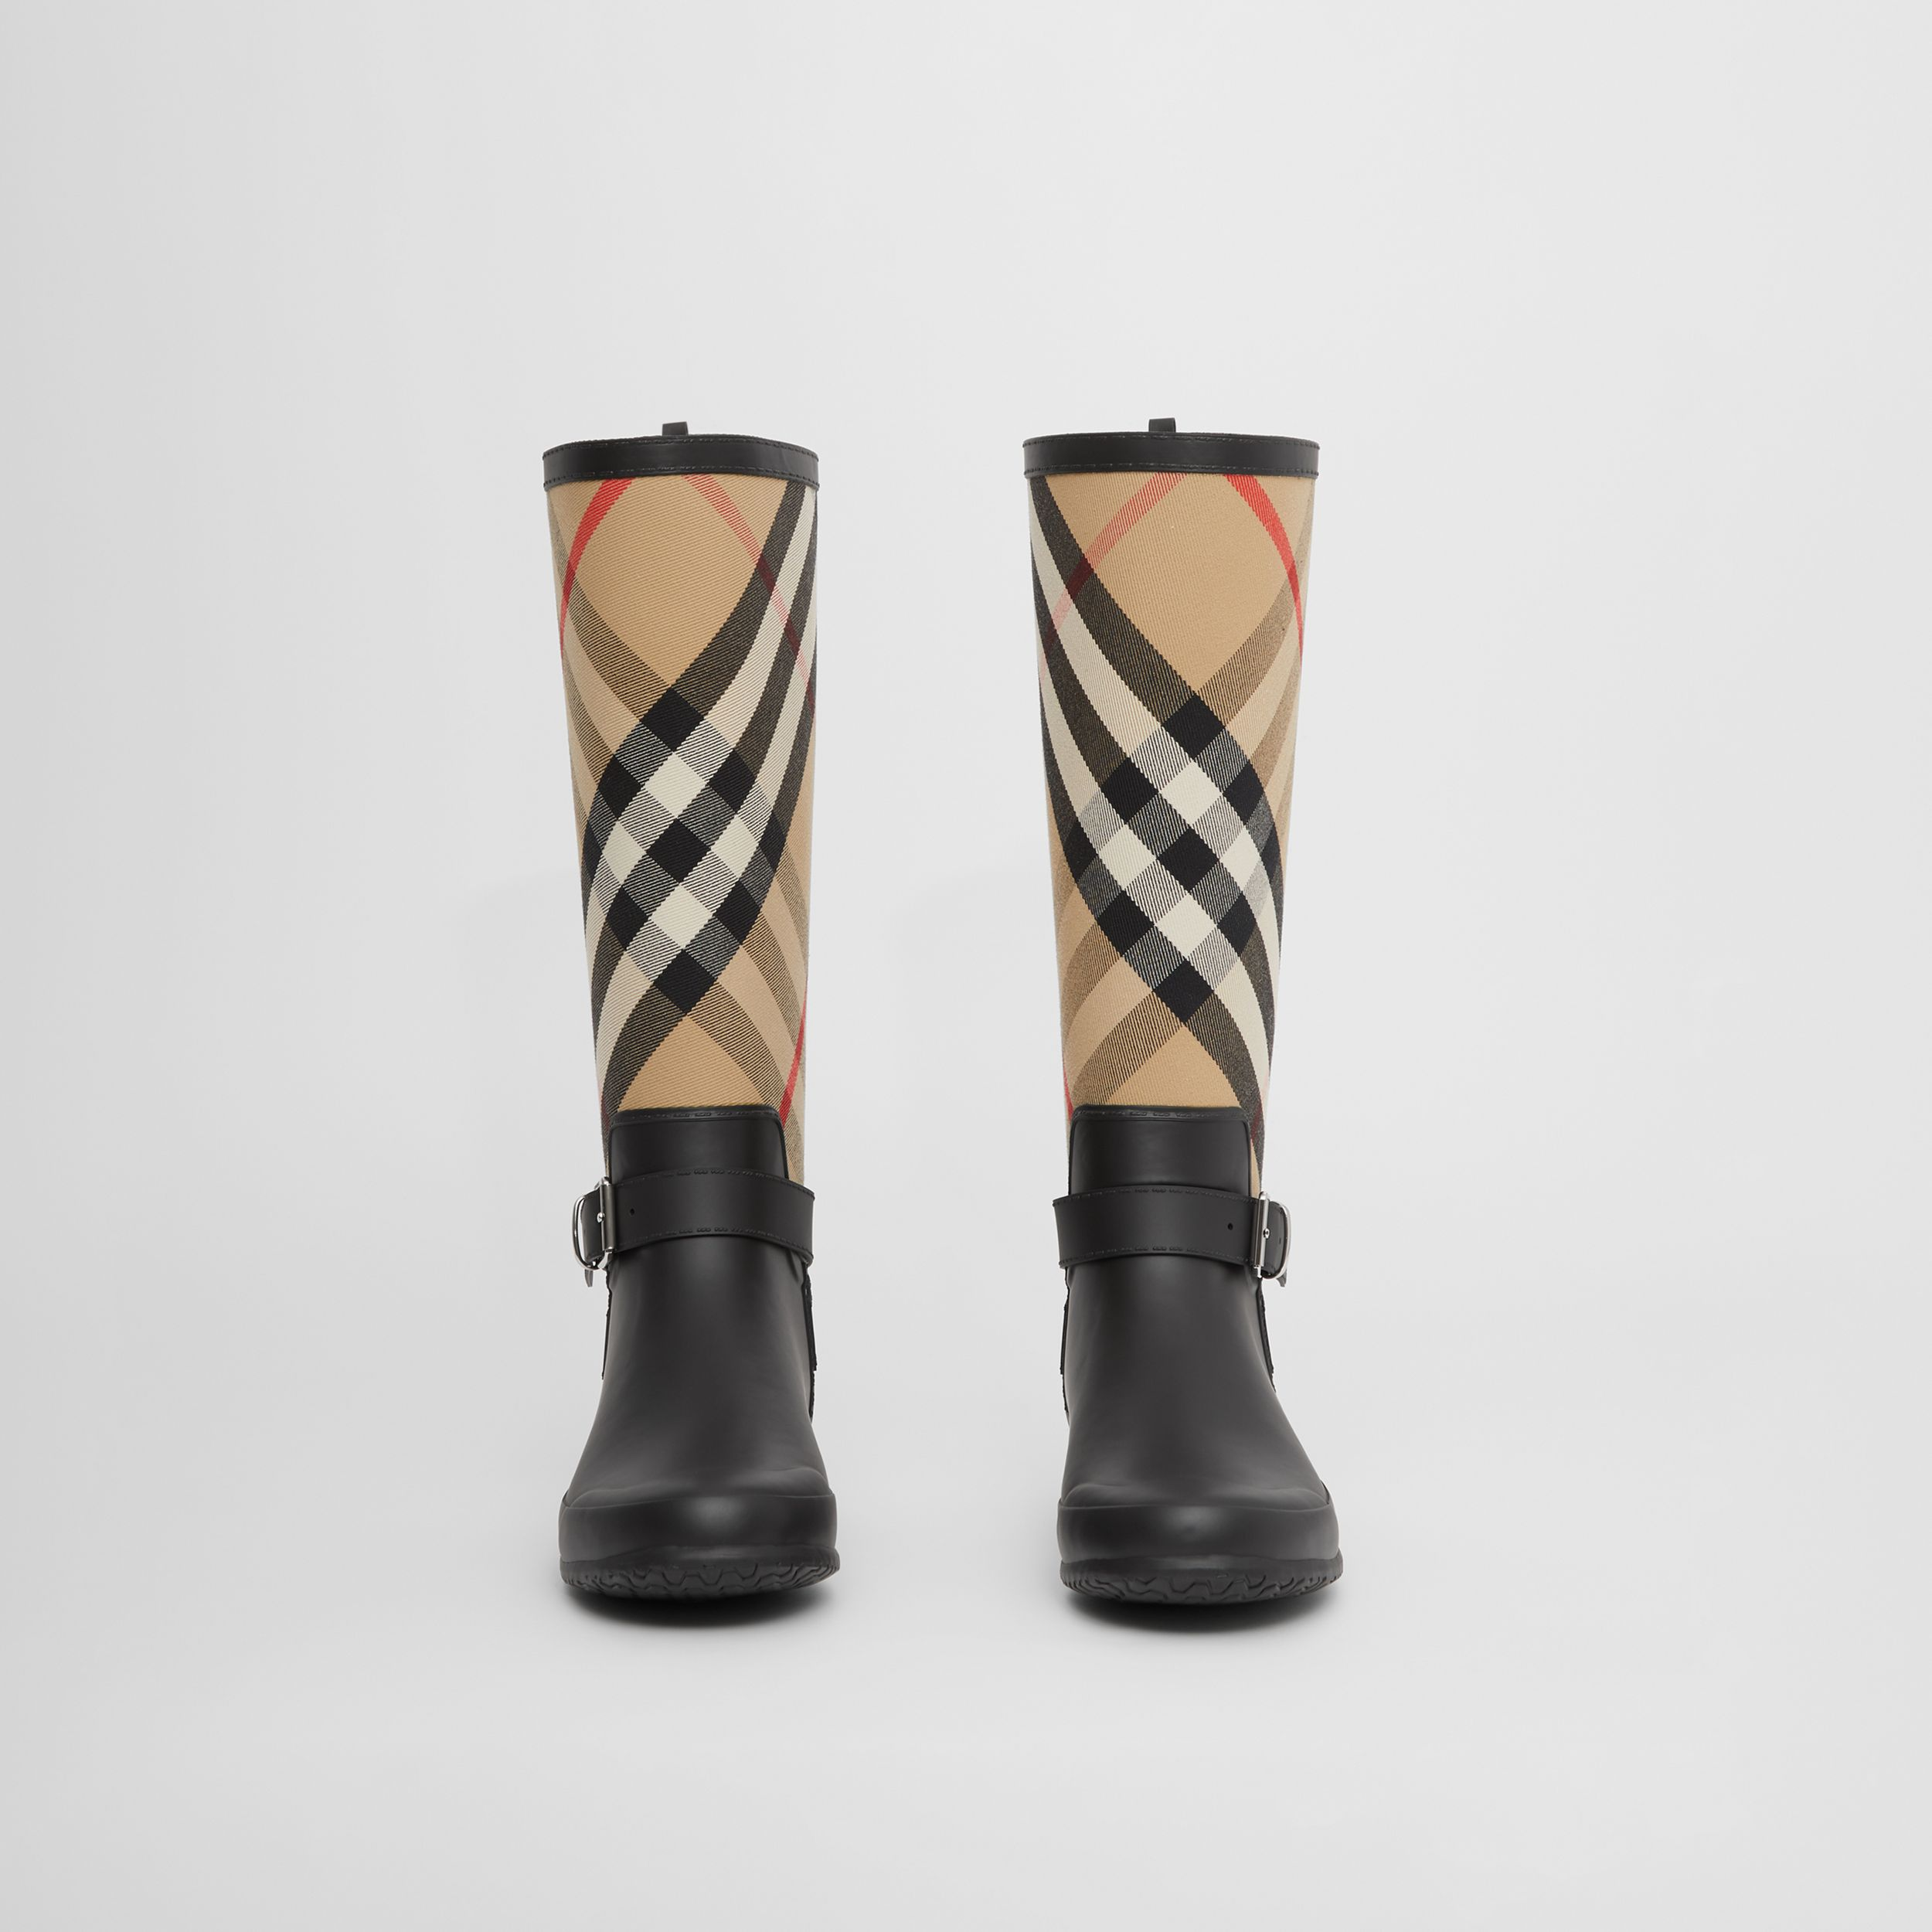 Strap Detail House Check and Rubber Rain Boots in Black/archive Beige - Women | Burberry - 4